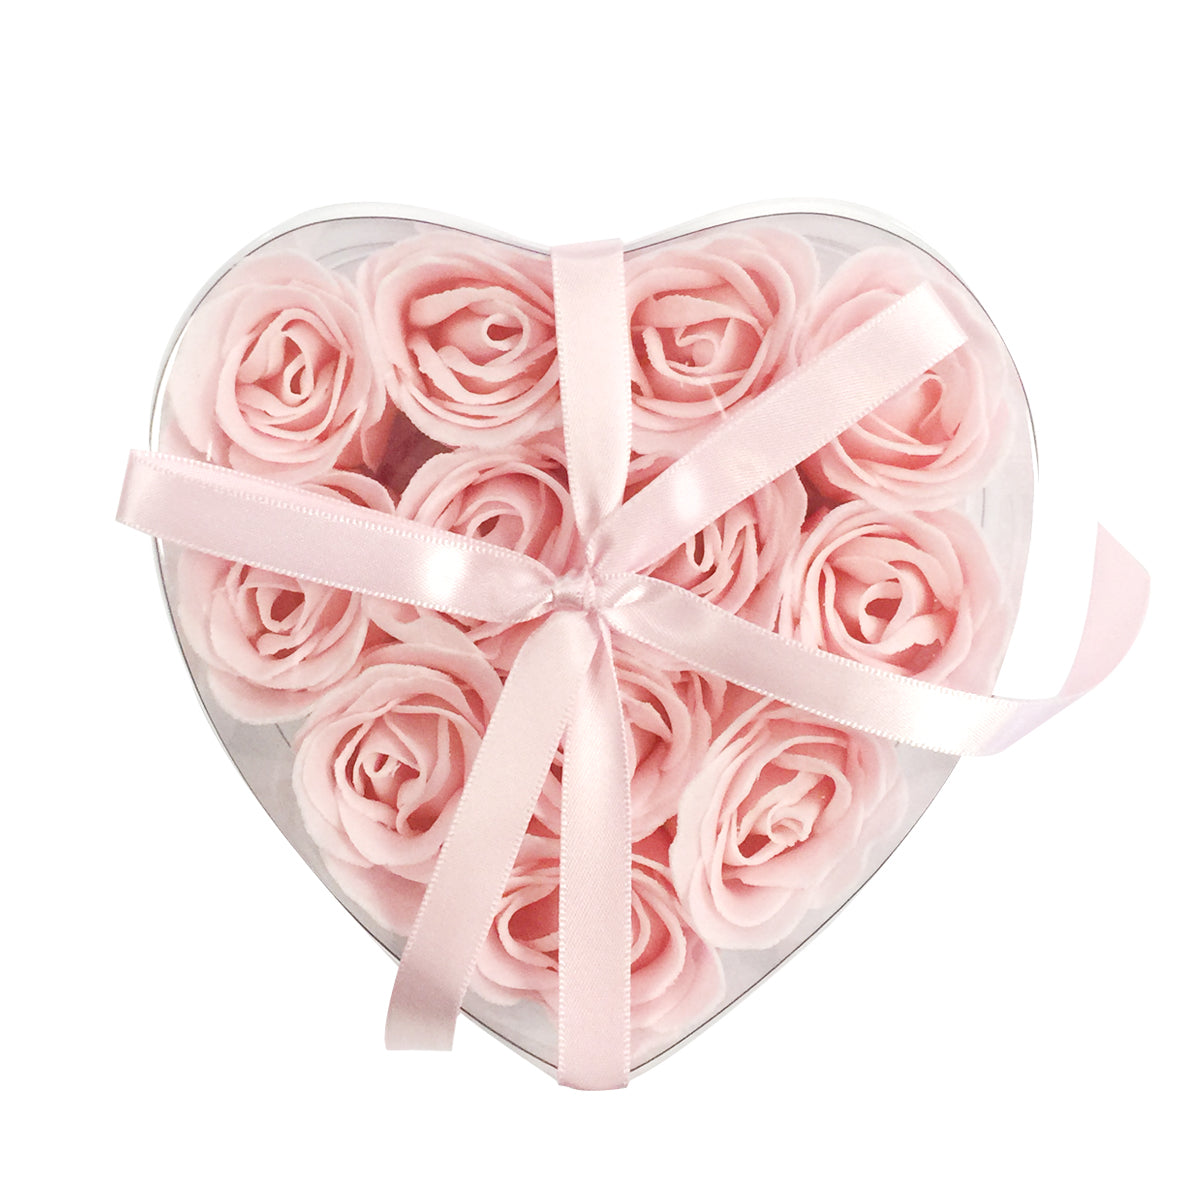 Scented Rose Soaps (set of 12)